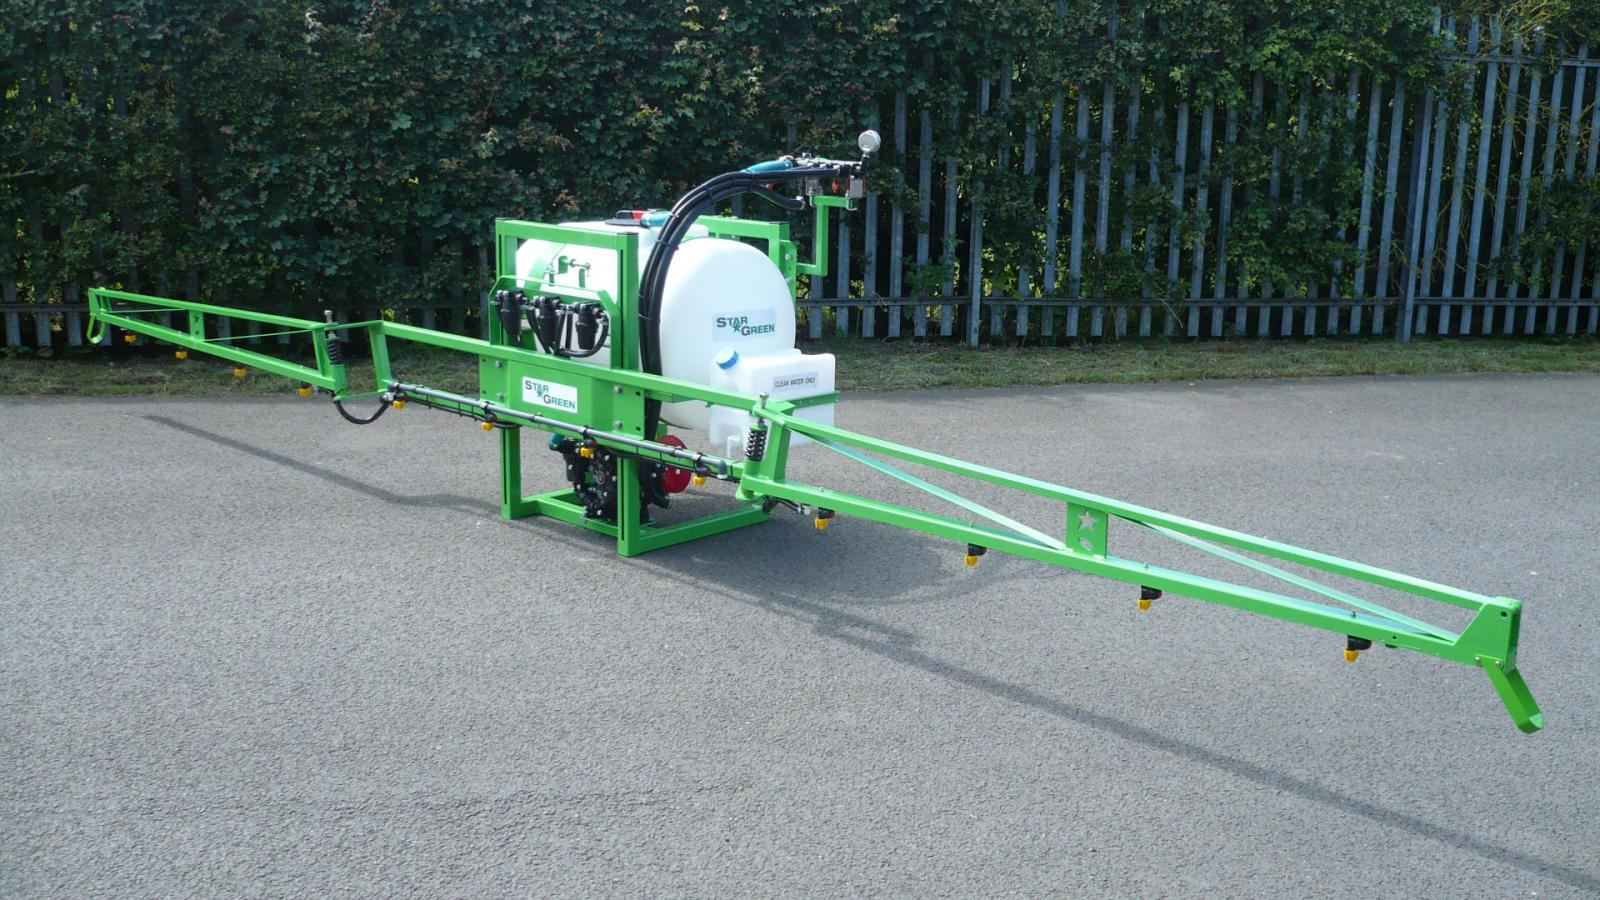 The AS200 is STARGREEN's entry level tractor mounted amenity sprayer yet still has the build quality, finish and high specification components found on the larger sprayers within the STARGREEN range.